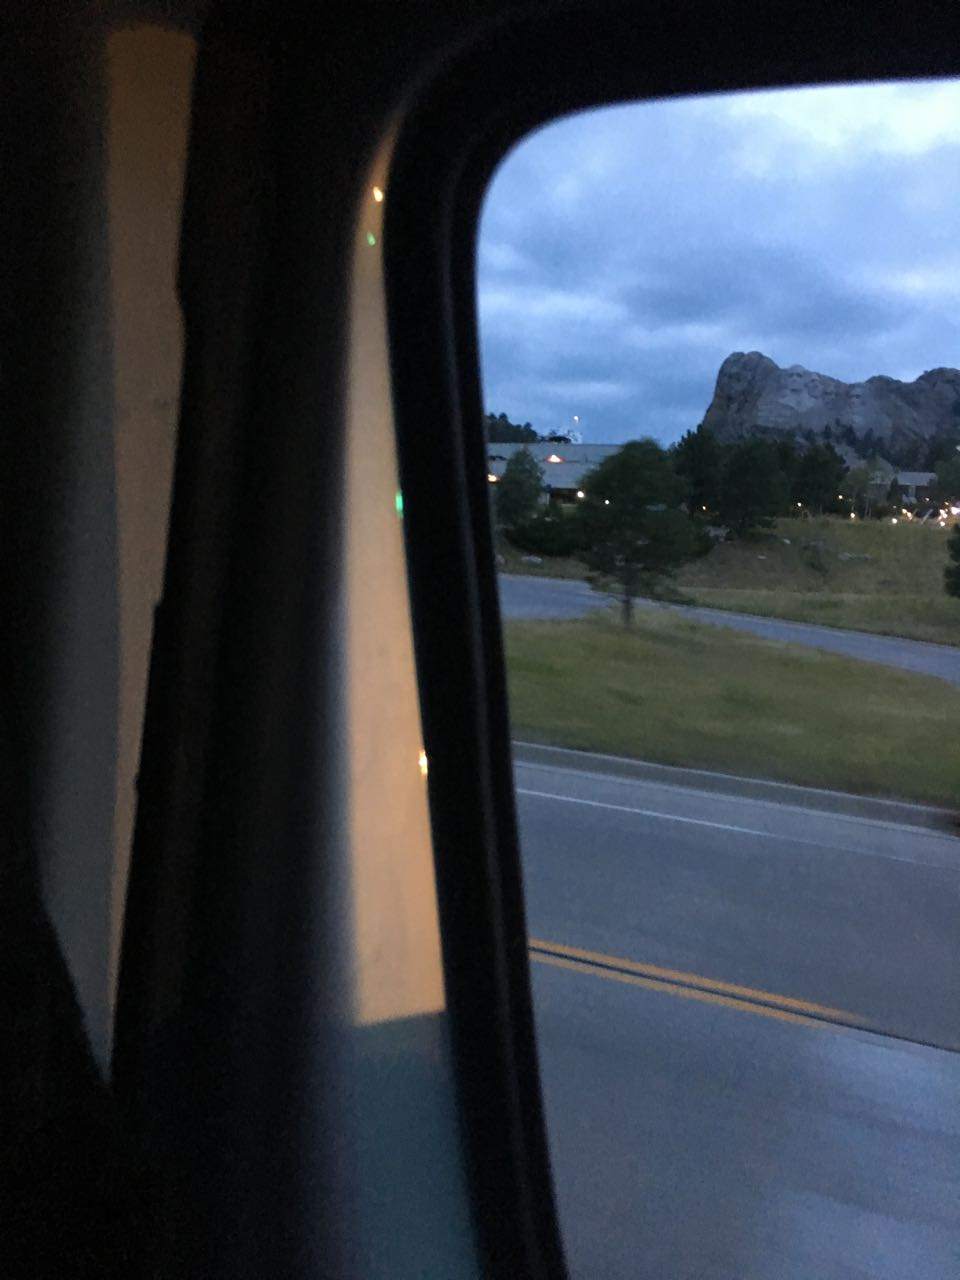 Mount Rushmore through a car window